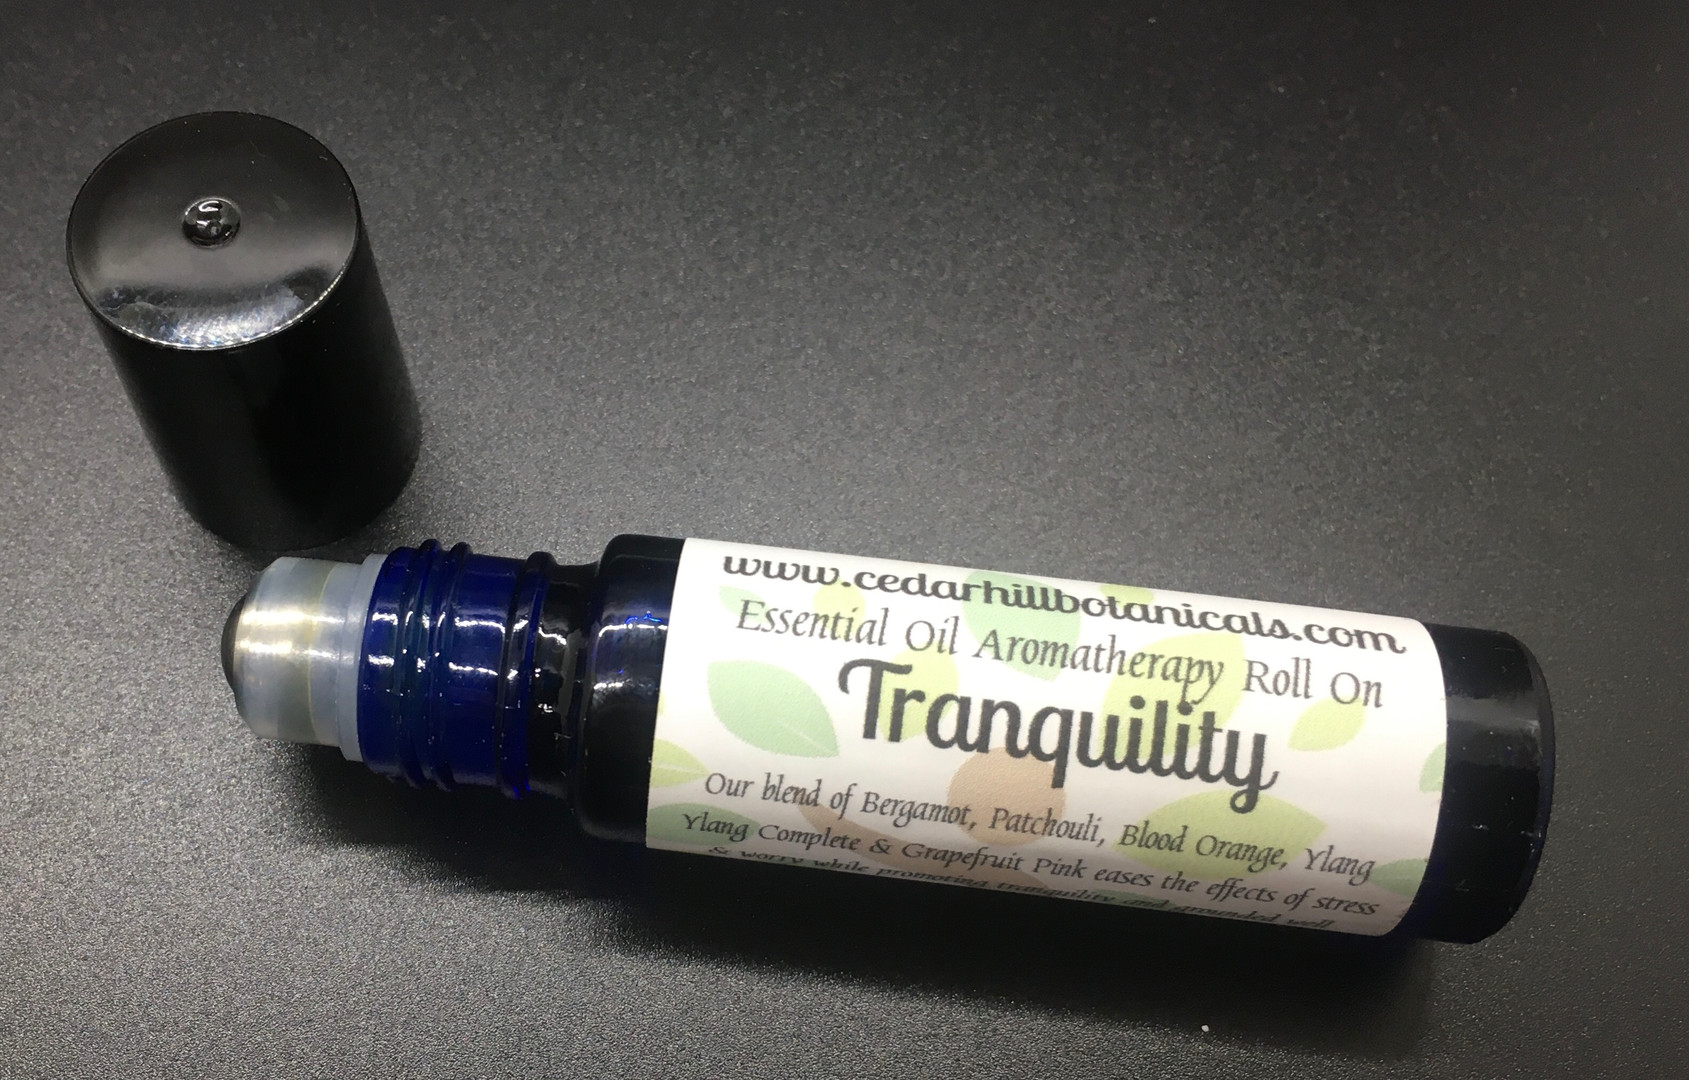 Tranqility Essential Oil Aromatherapy Roll On